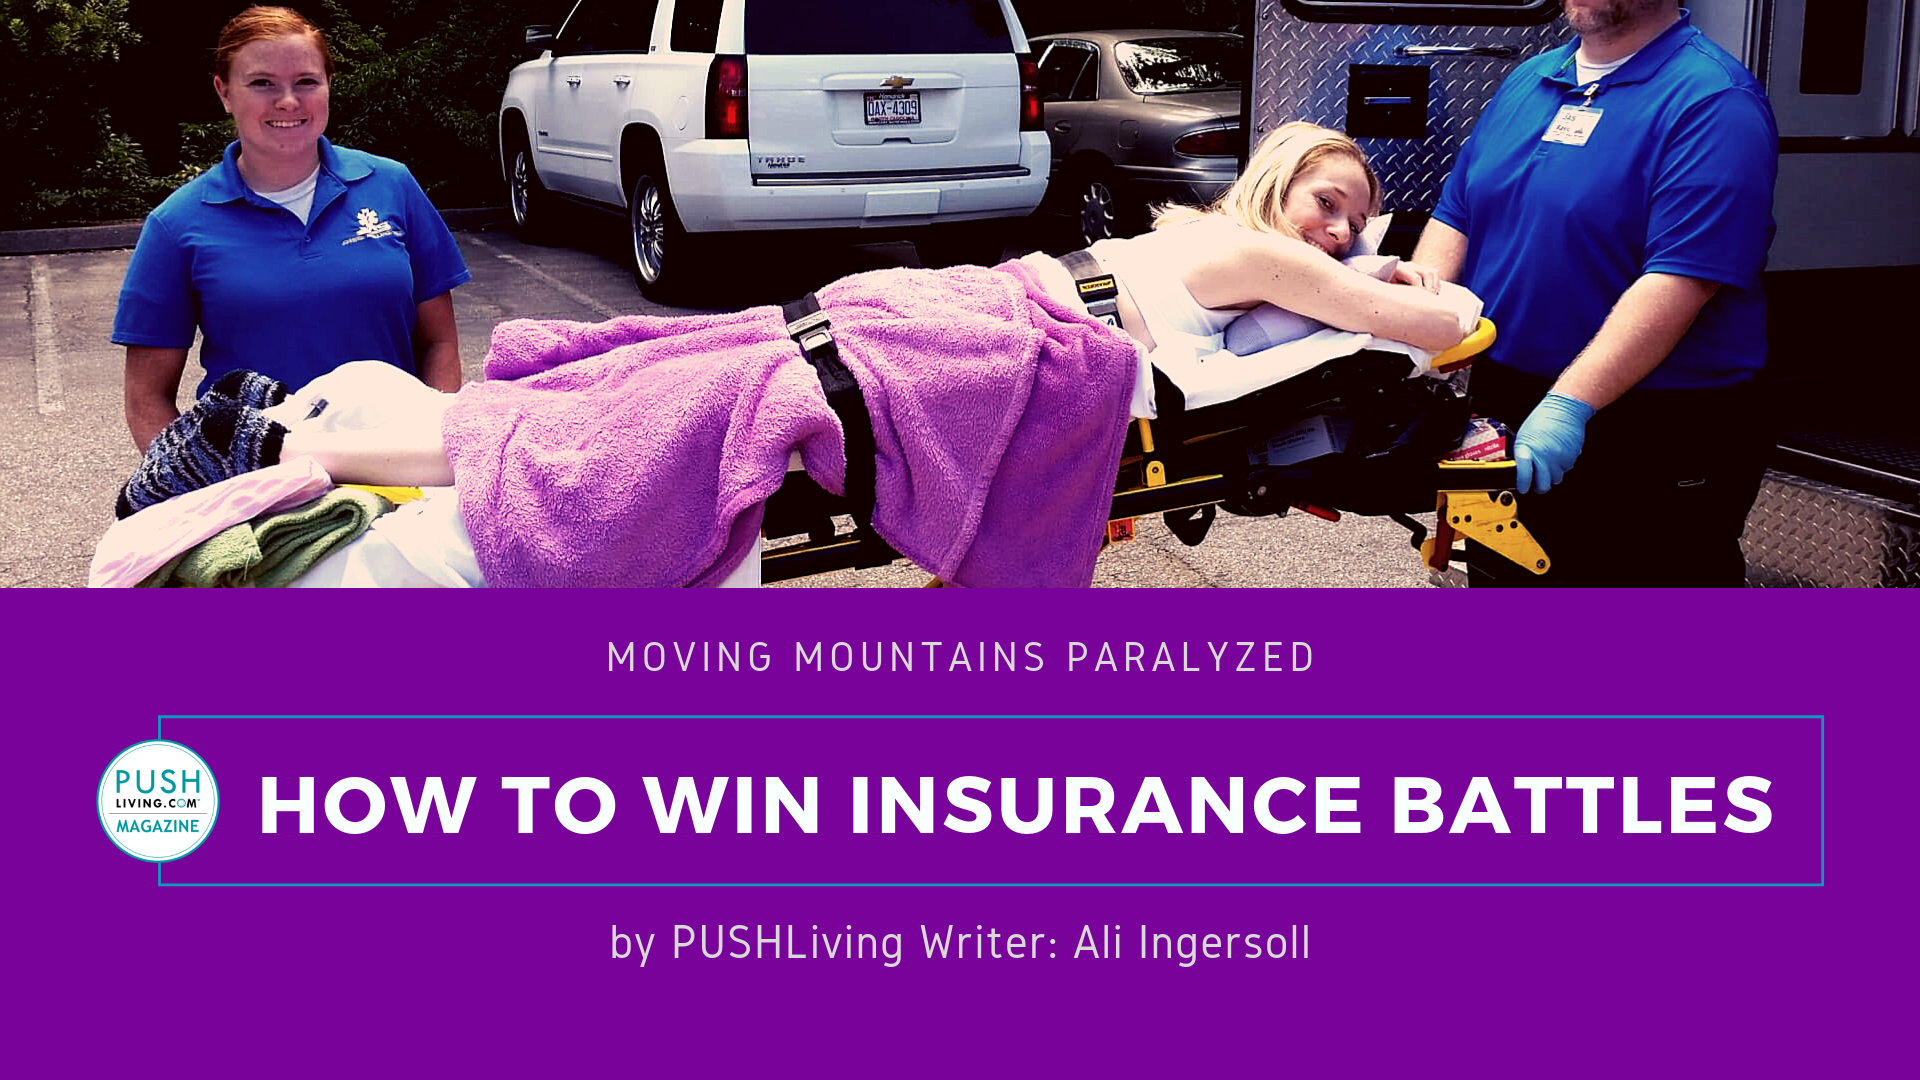 8 22 Cover - Moving Mountains Paralyzed: How to Win Insurance Battles